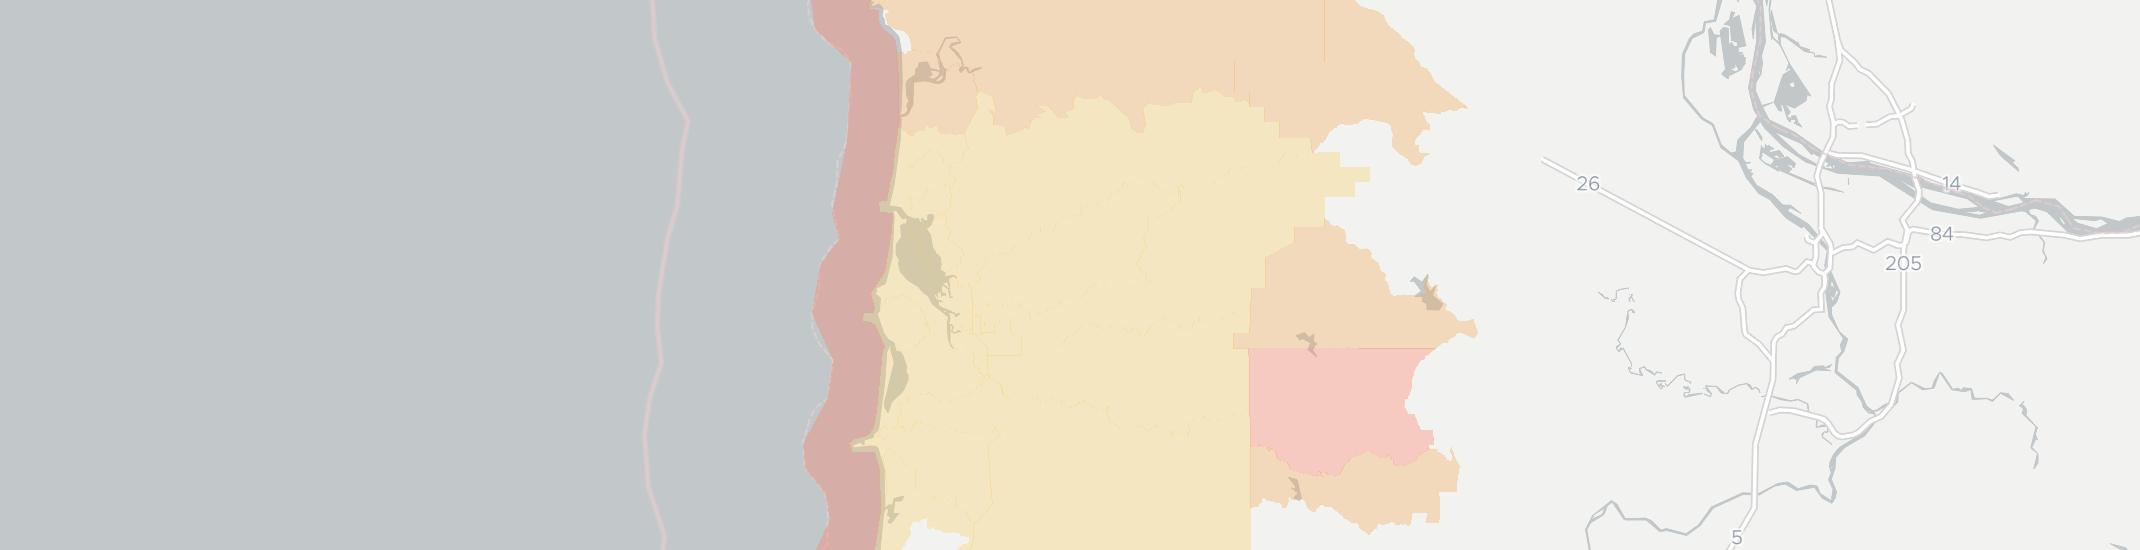 Tillamook Internet Competition Map. Click for interactive map.